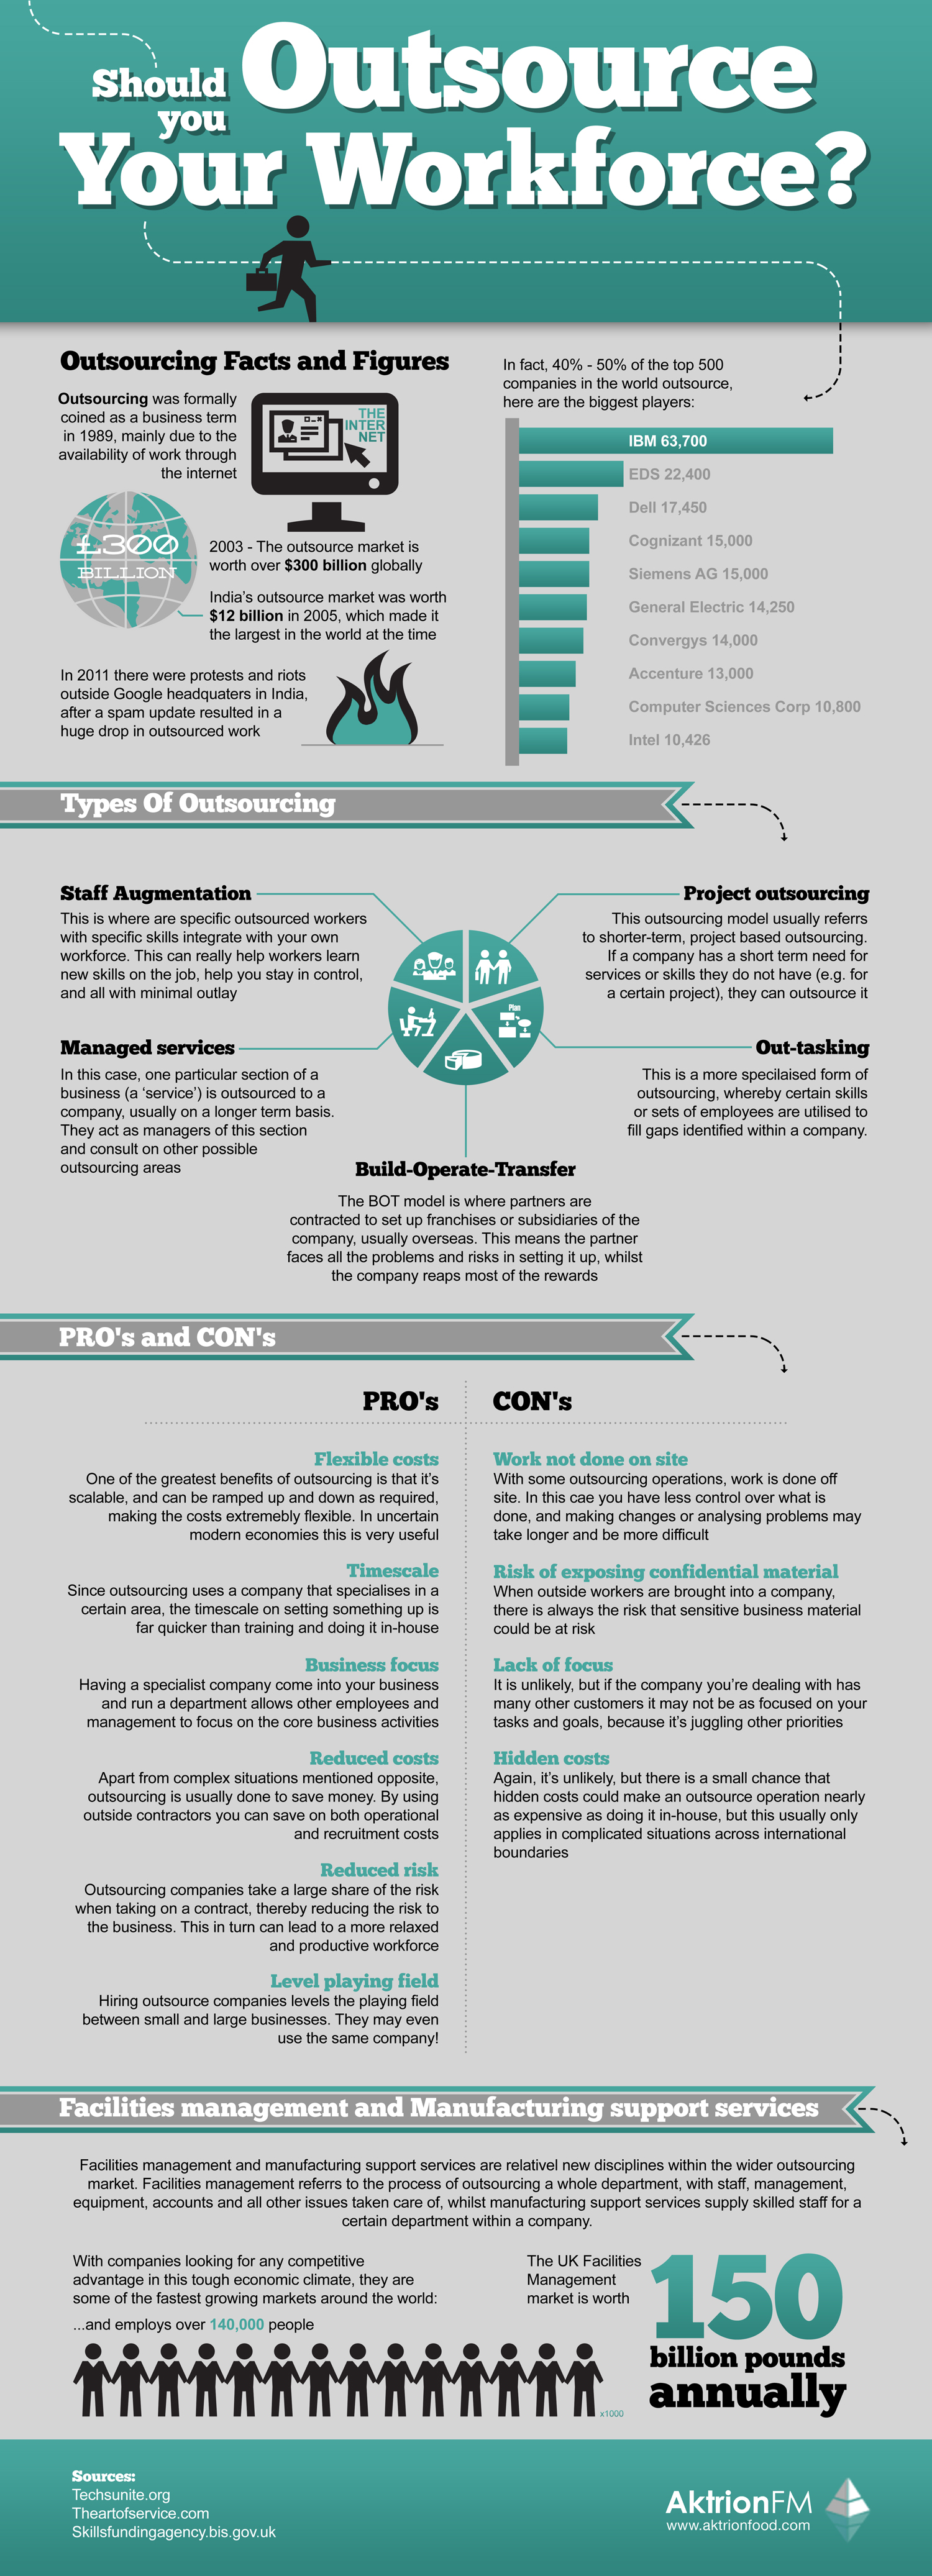 should-you-outsource-your-workforce_5097a245e3183